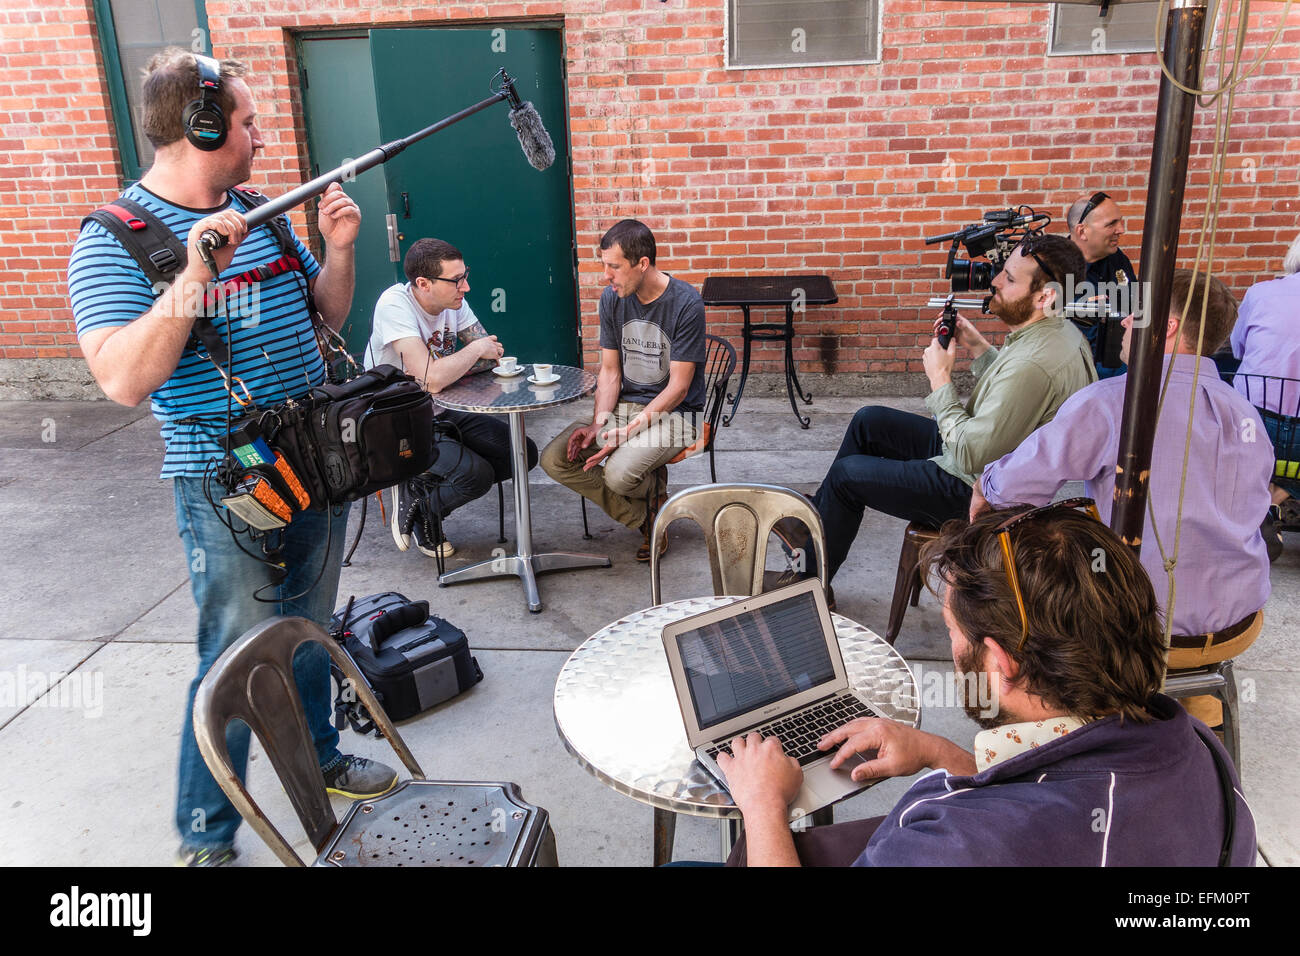 A New York City based independent film production crew film an interview with the owner of the Handlebar coffee - Stock Image